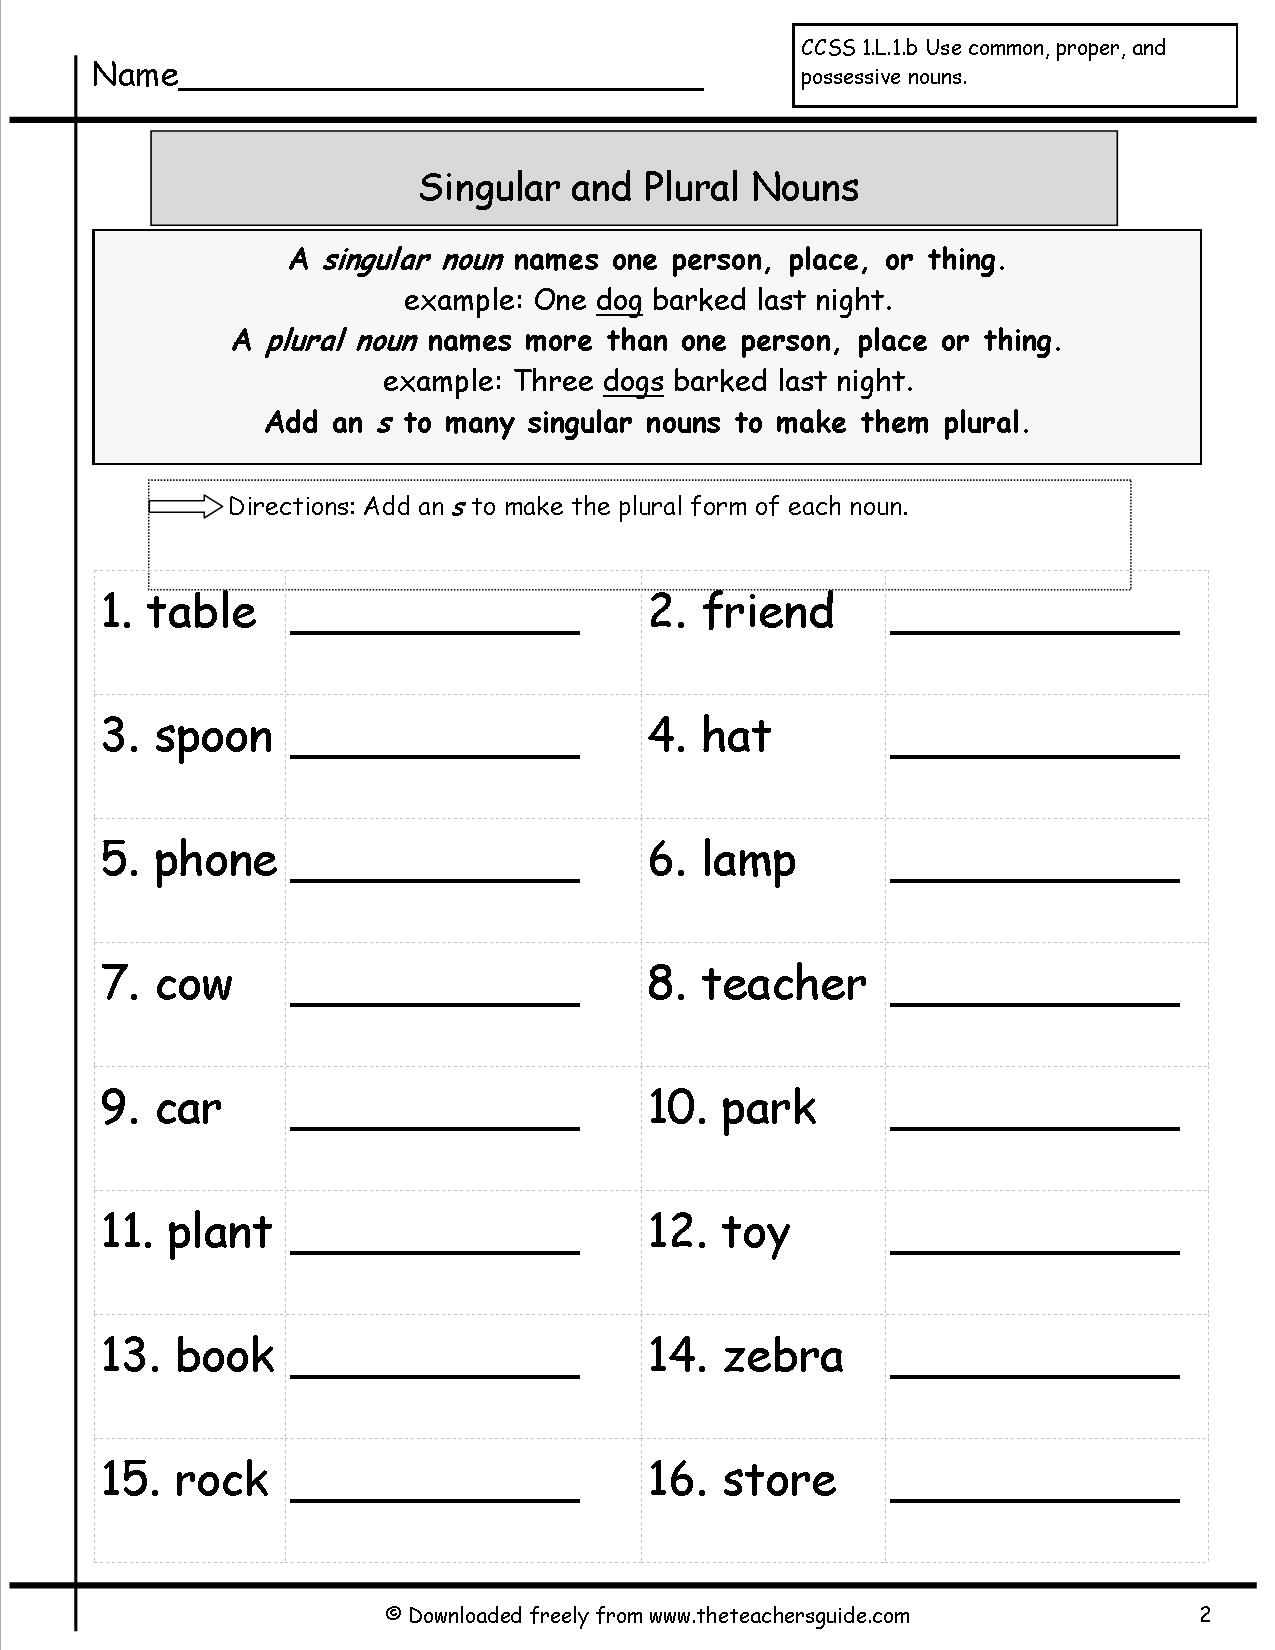 90 Best 1st Grade Language Images On Worksheets Samples Teaching Reading